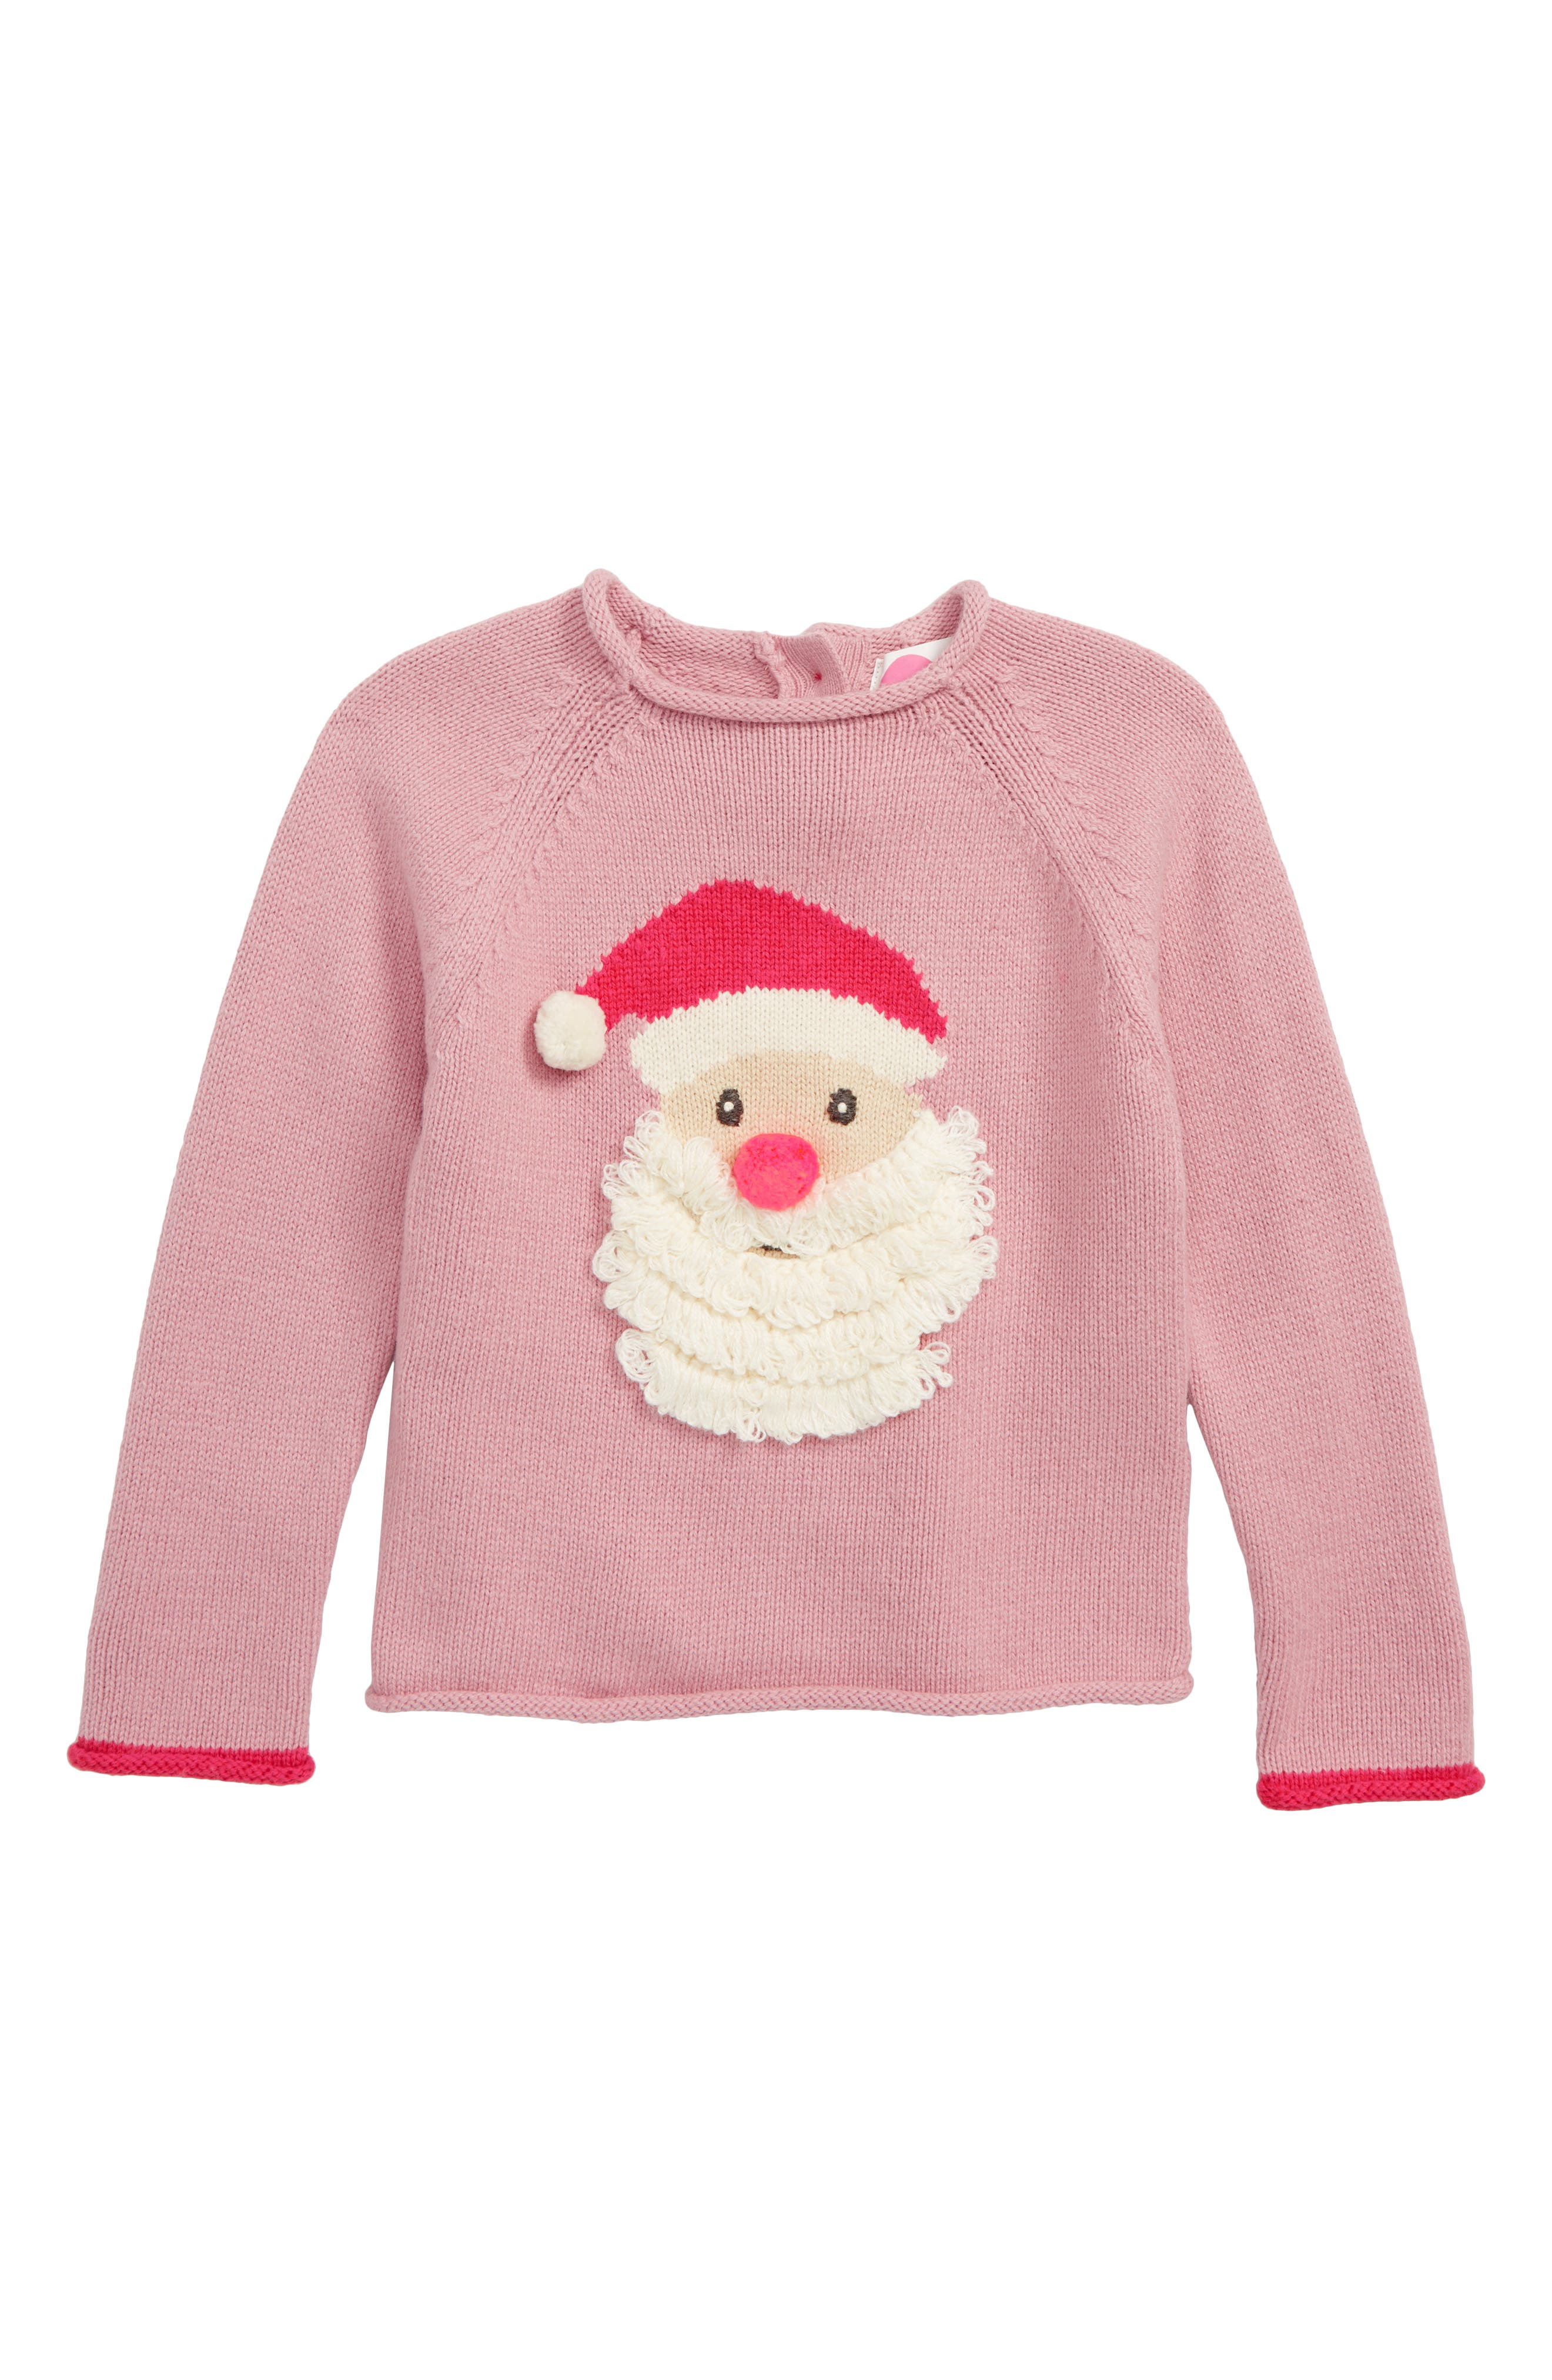 Christmas Day Sweater,                             Main thumbnail 1, color,                             VINTAGE PINK FATHER CHRISTM